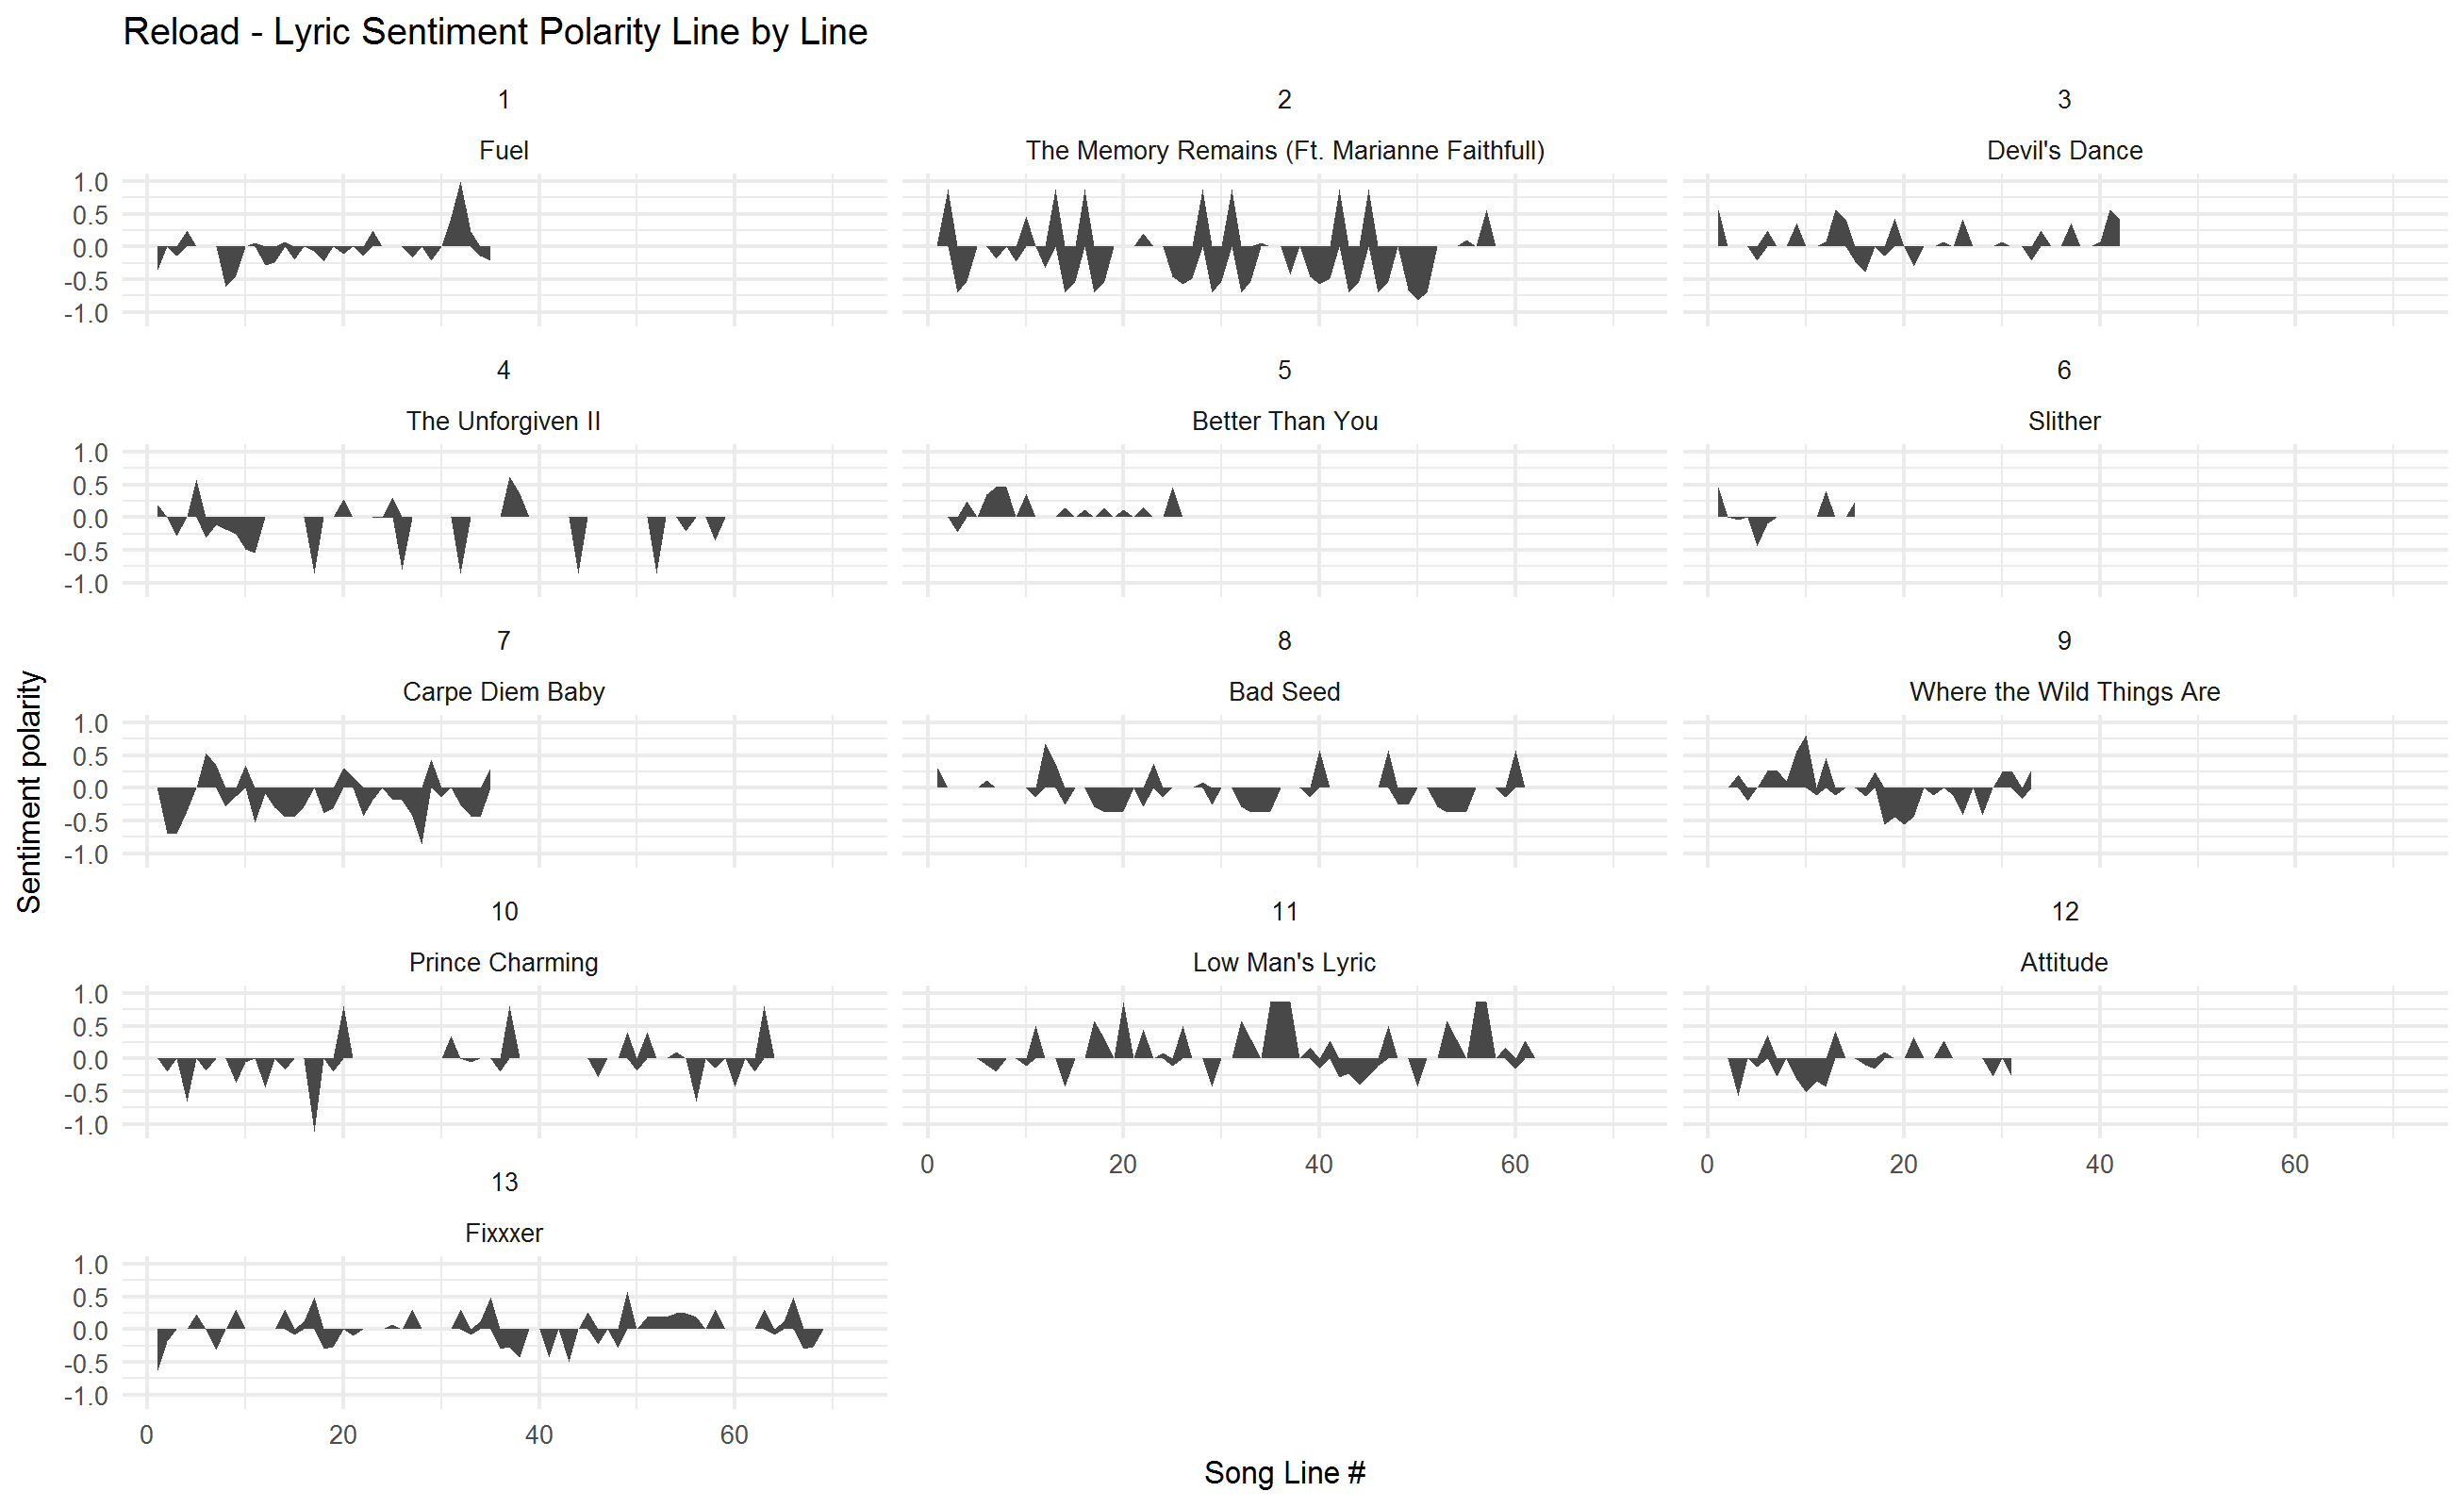 2018-02-01-Sentiment-by-track-Reload.png